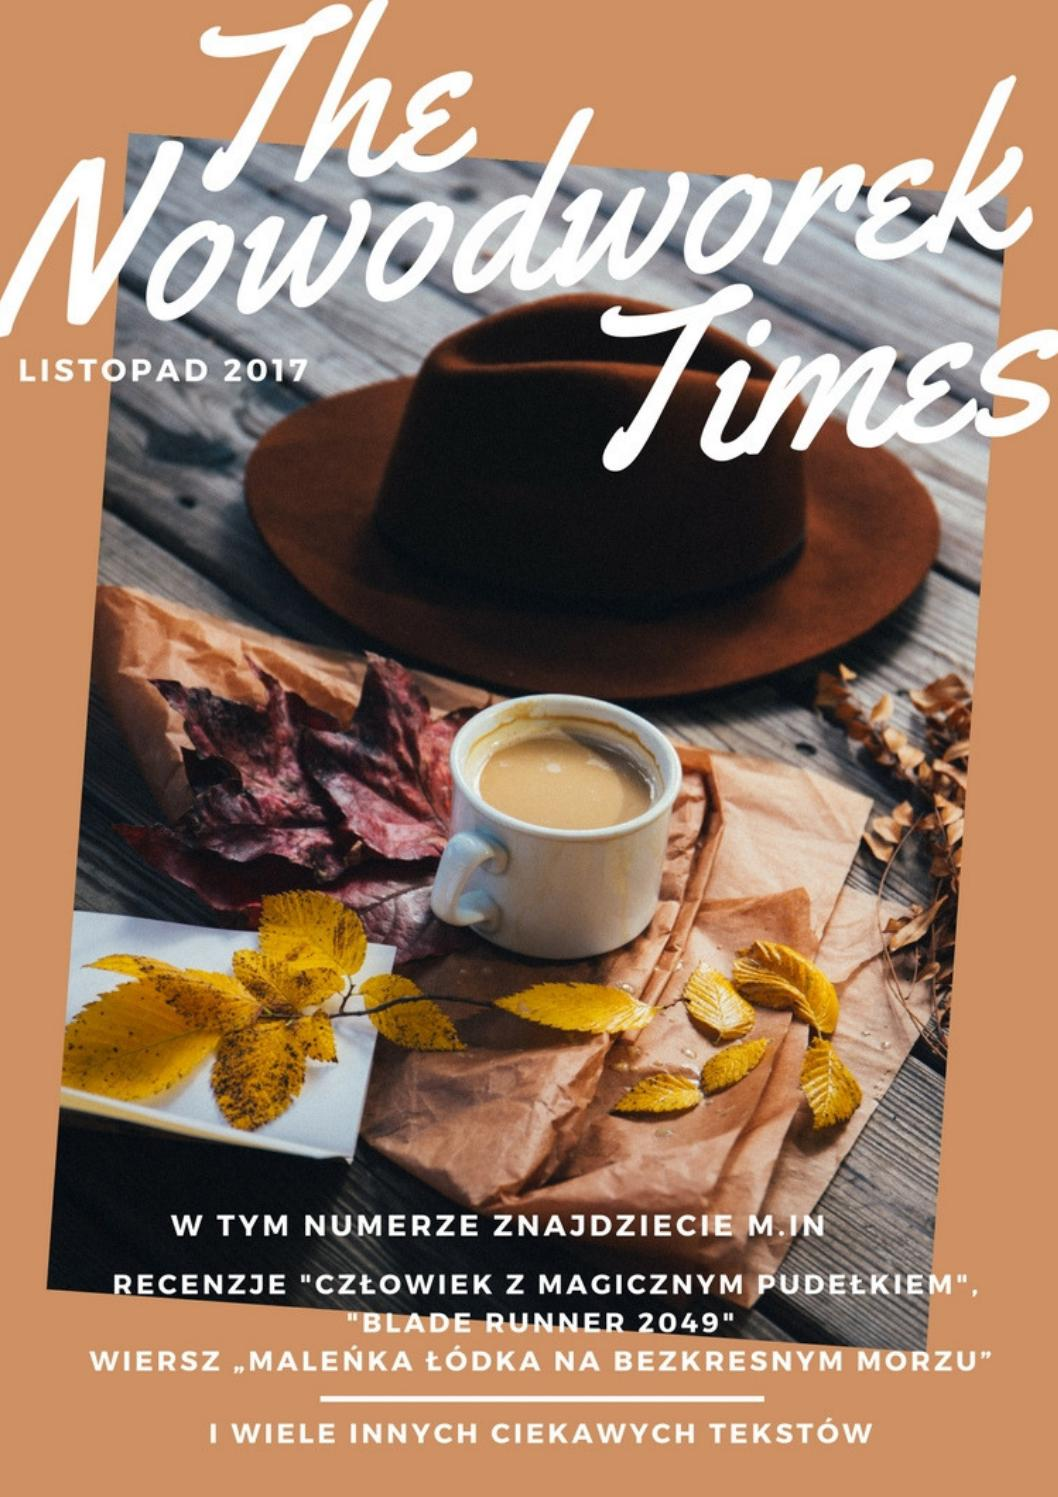 The Nowodworek Times November 2017 By The Nowodworek Times